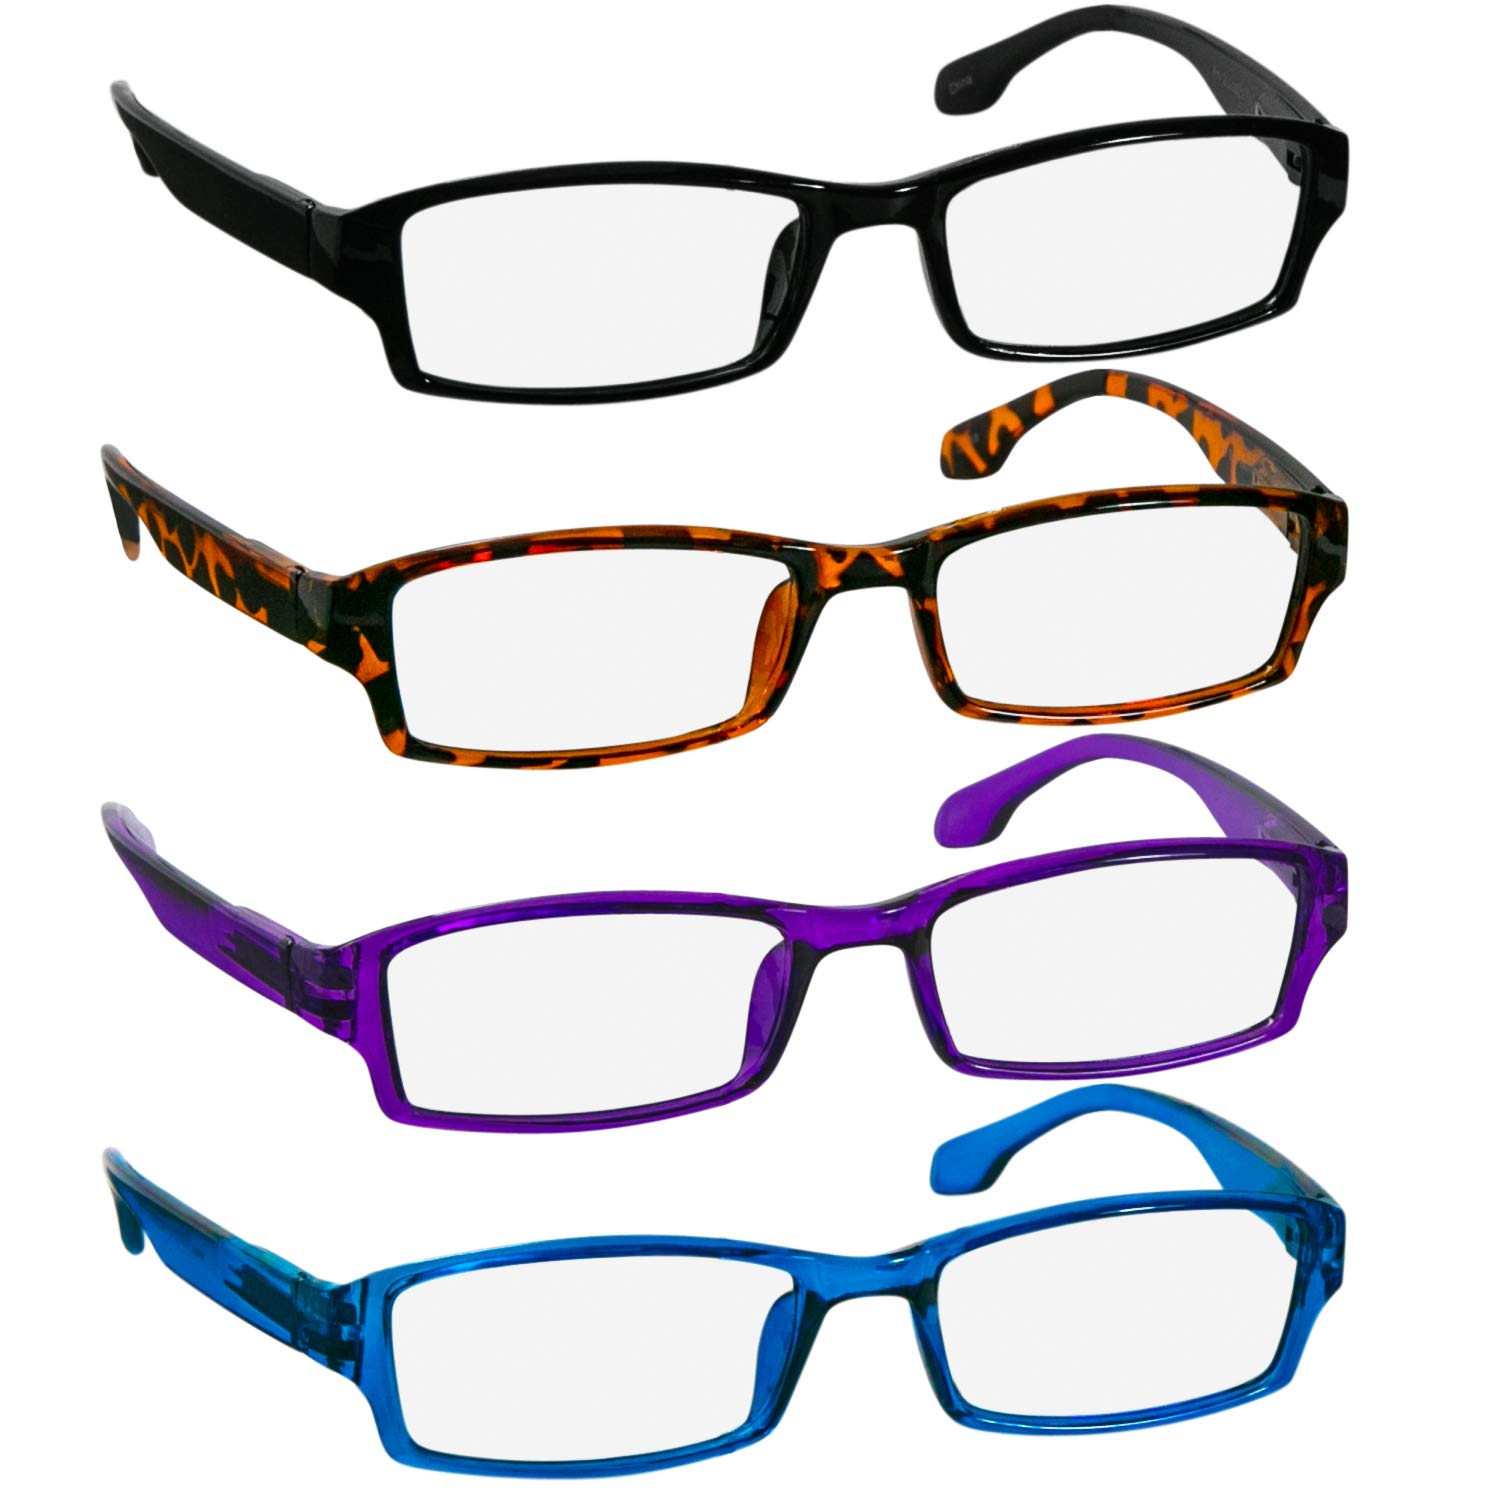 e391b7787344 Amazon.com  Reading Glasses 5.5 Black Tortoise Purple Blue Readers for Men  and Women - Stylish Look and Crystal Clear Vision When You Need It!Spring  Arms ...